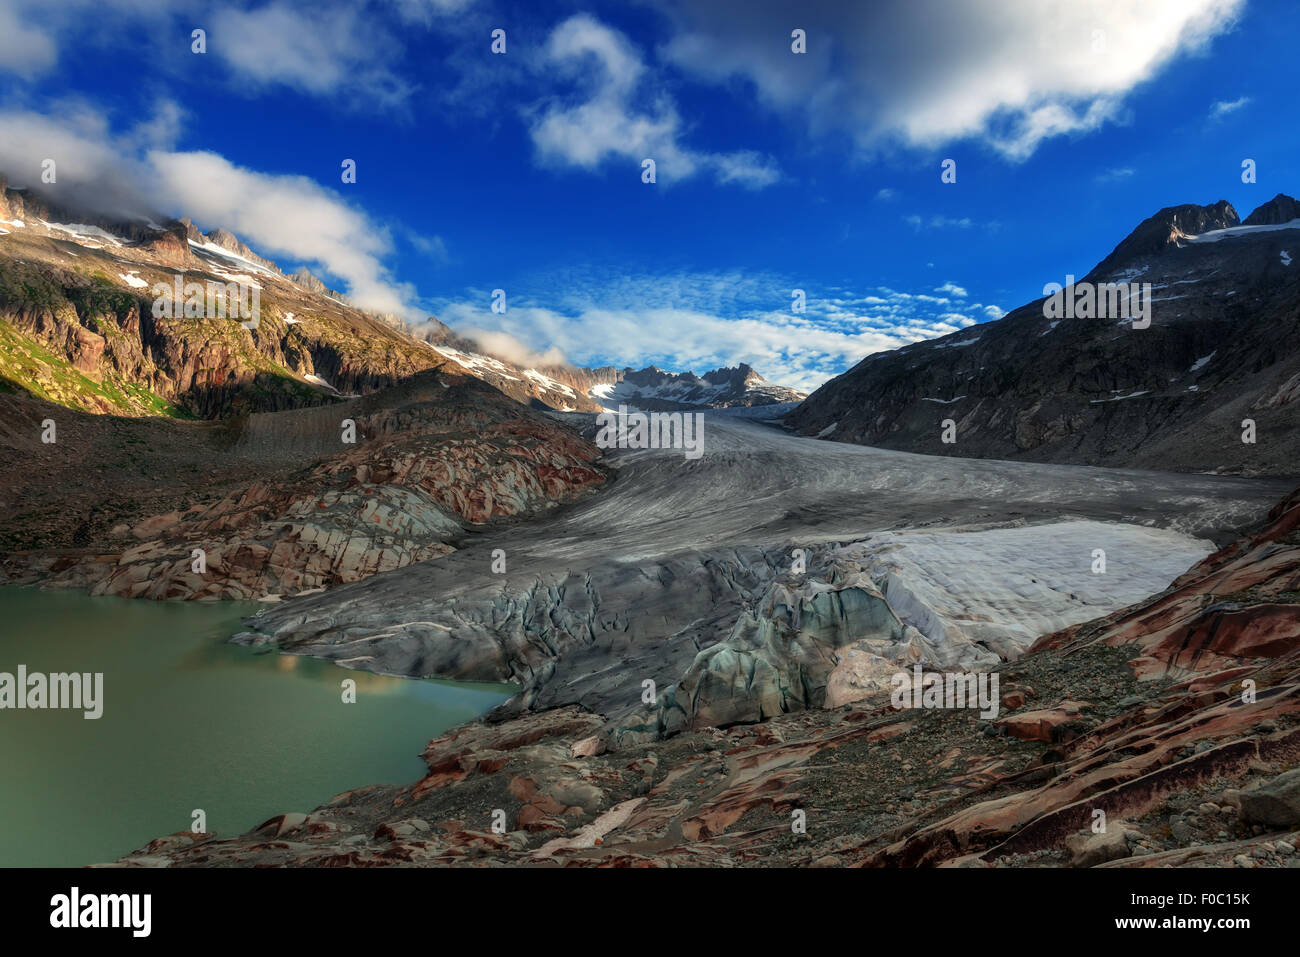 Rhone glacier in Swiss Alps in summer day. Switzerland, Europe. Stock Photo